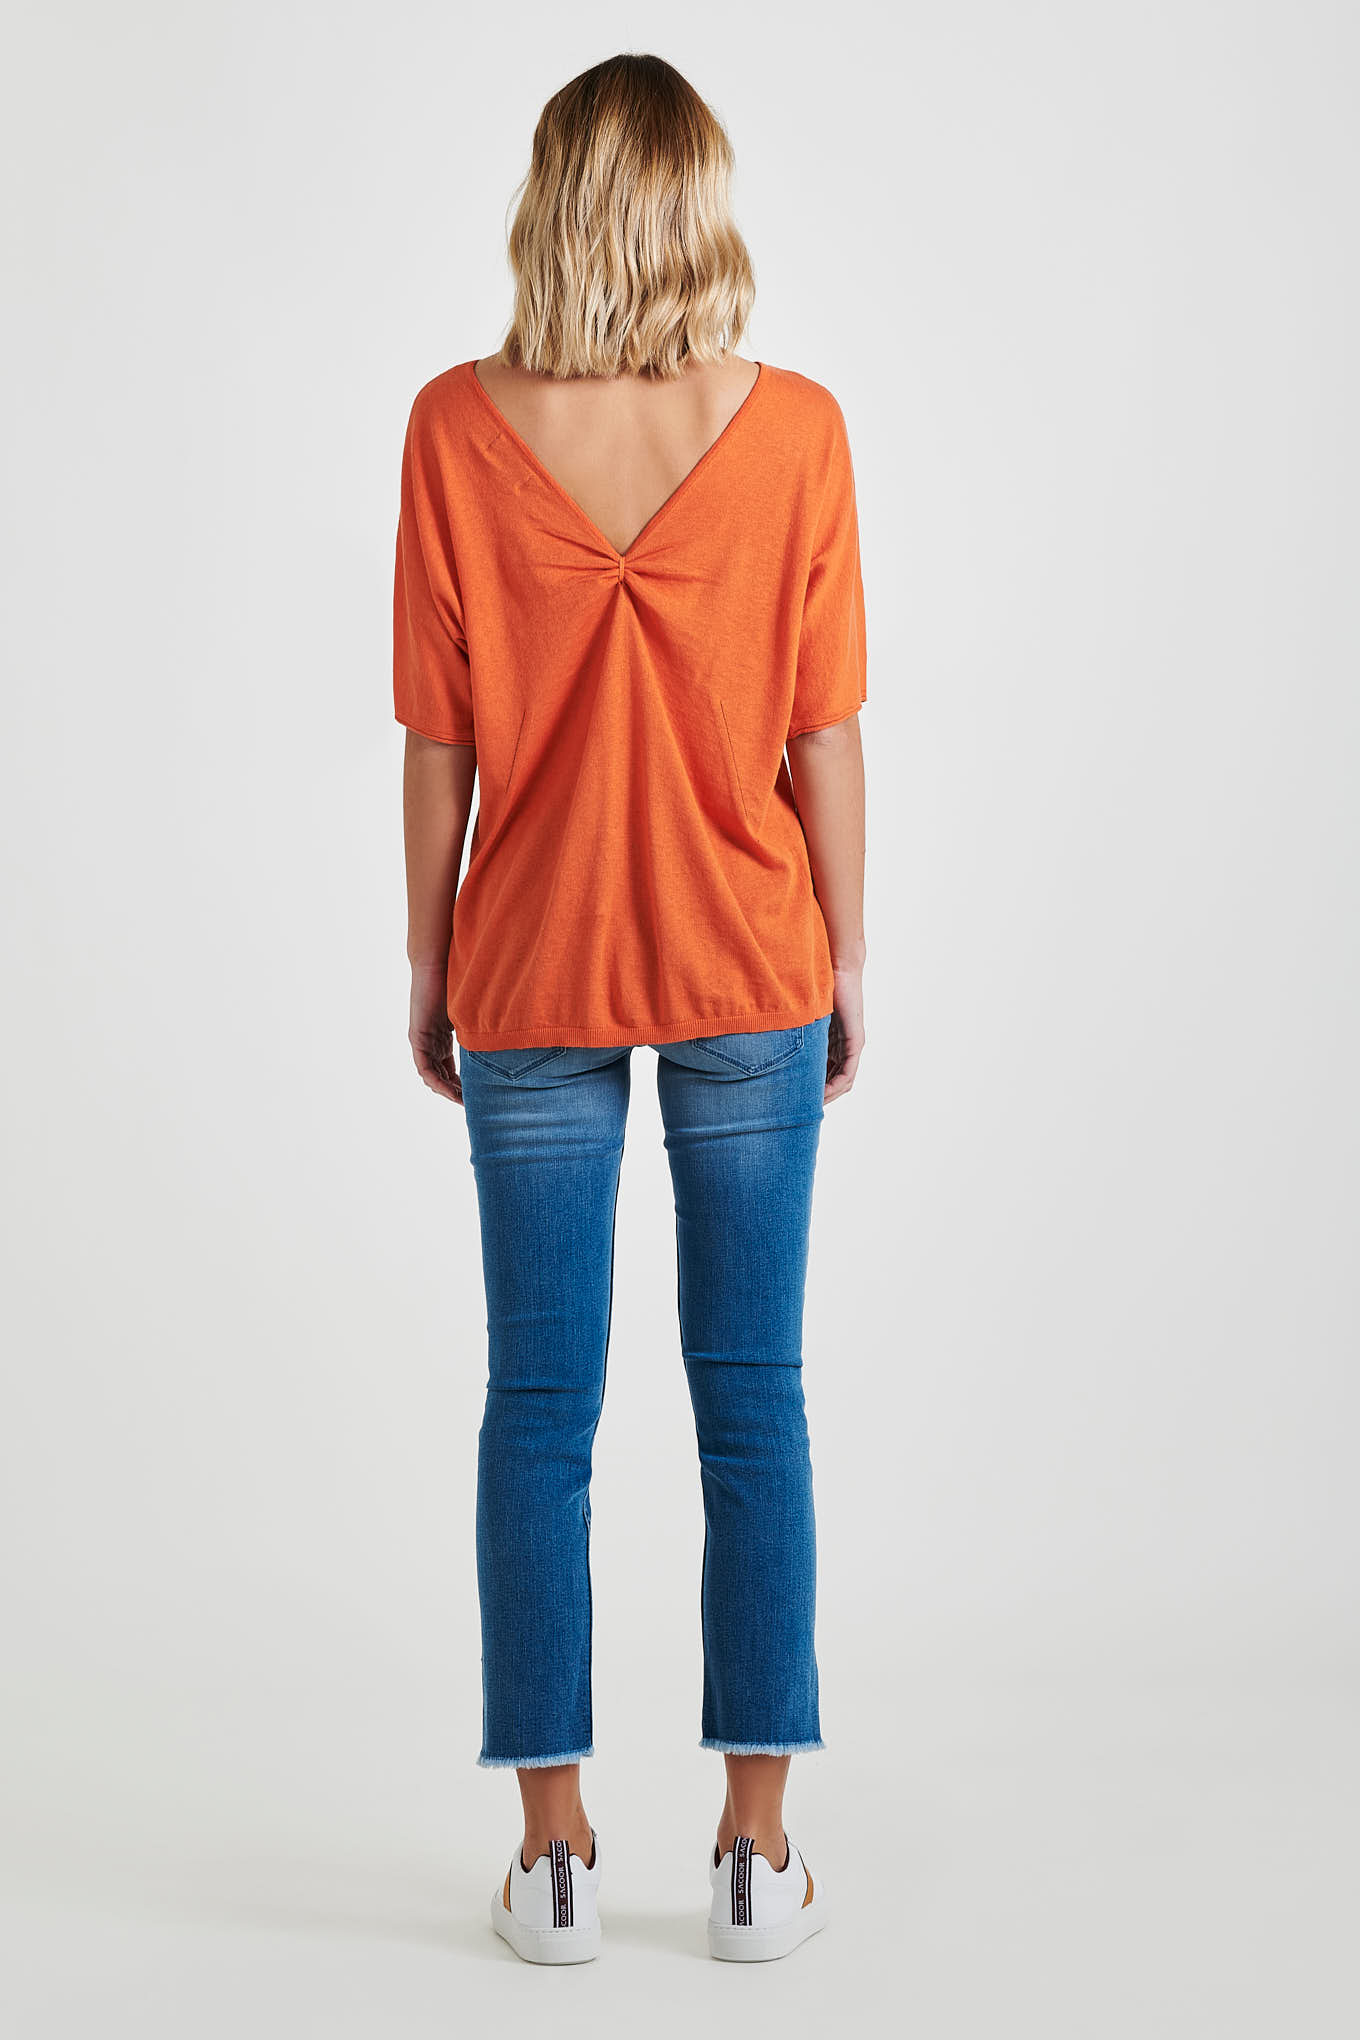 Sweater Orange Casual Woman